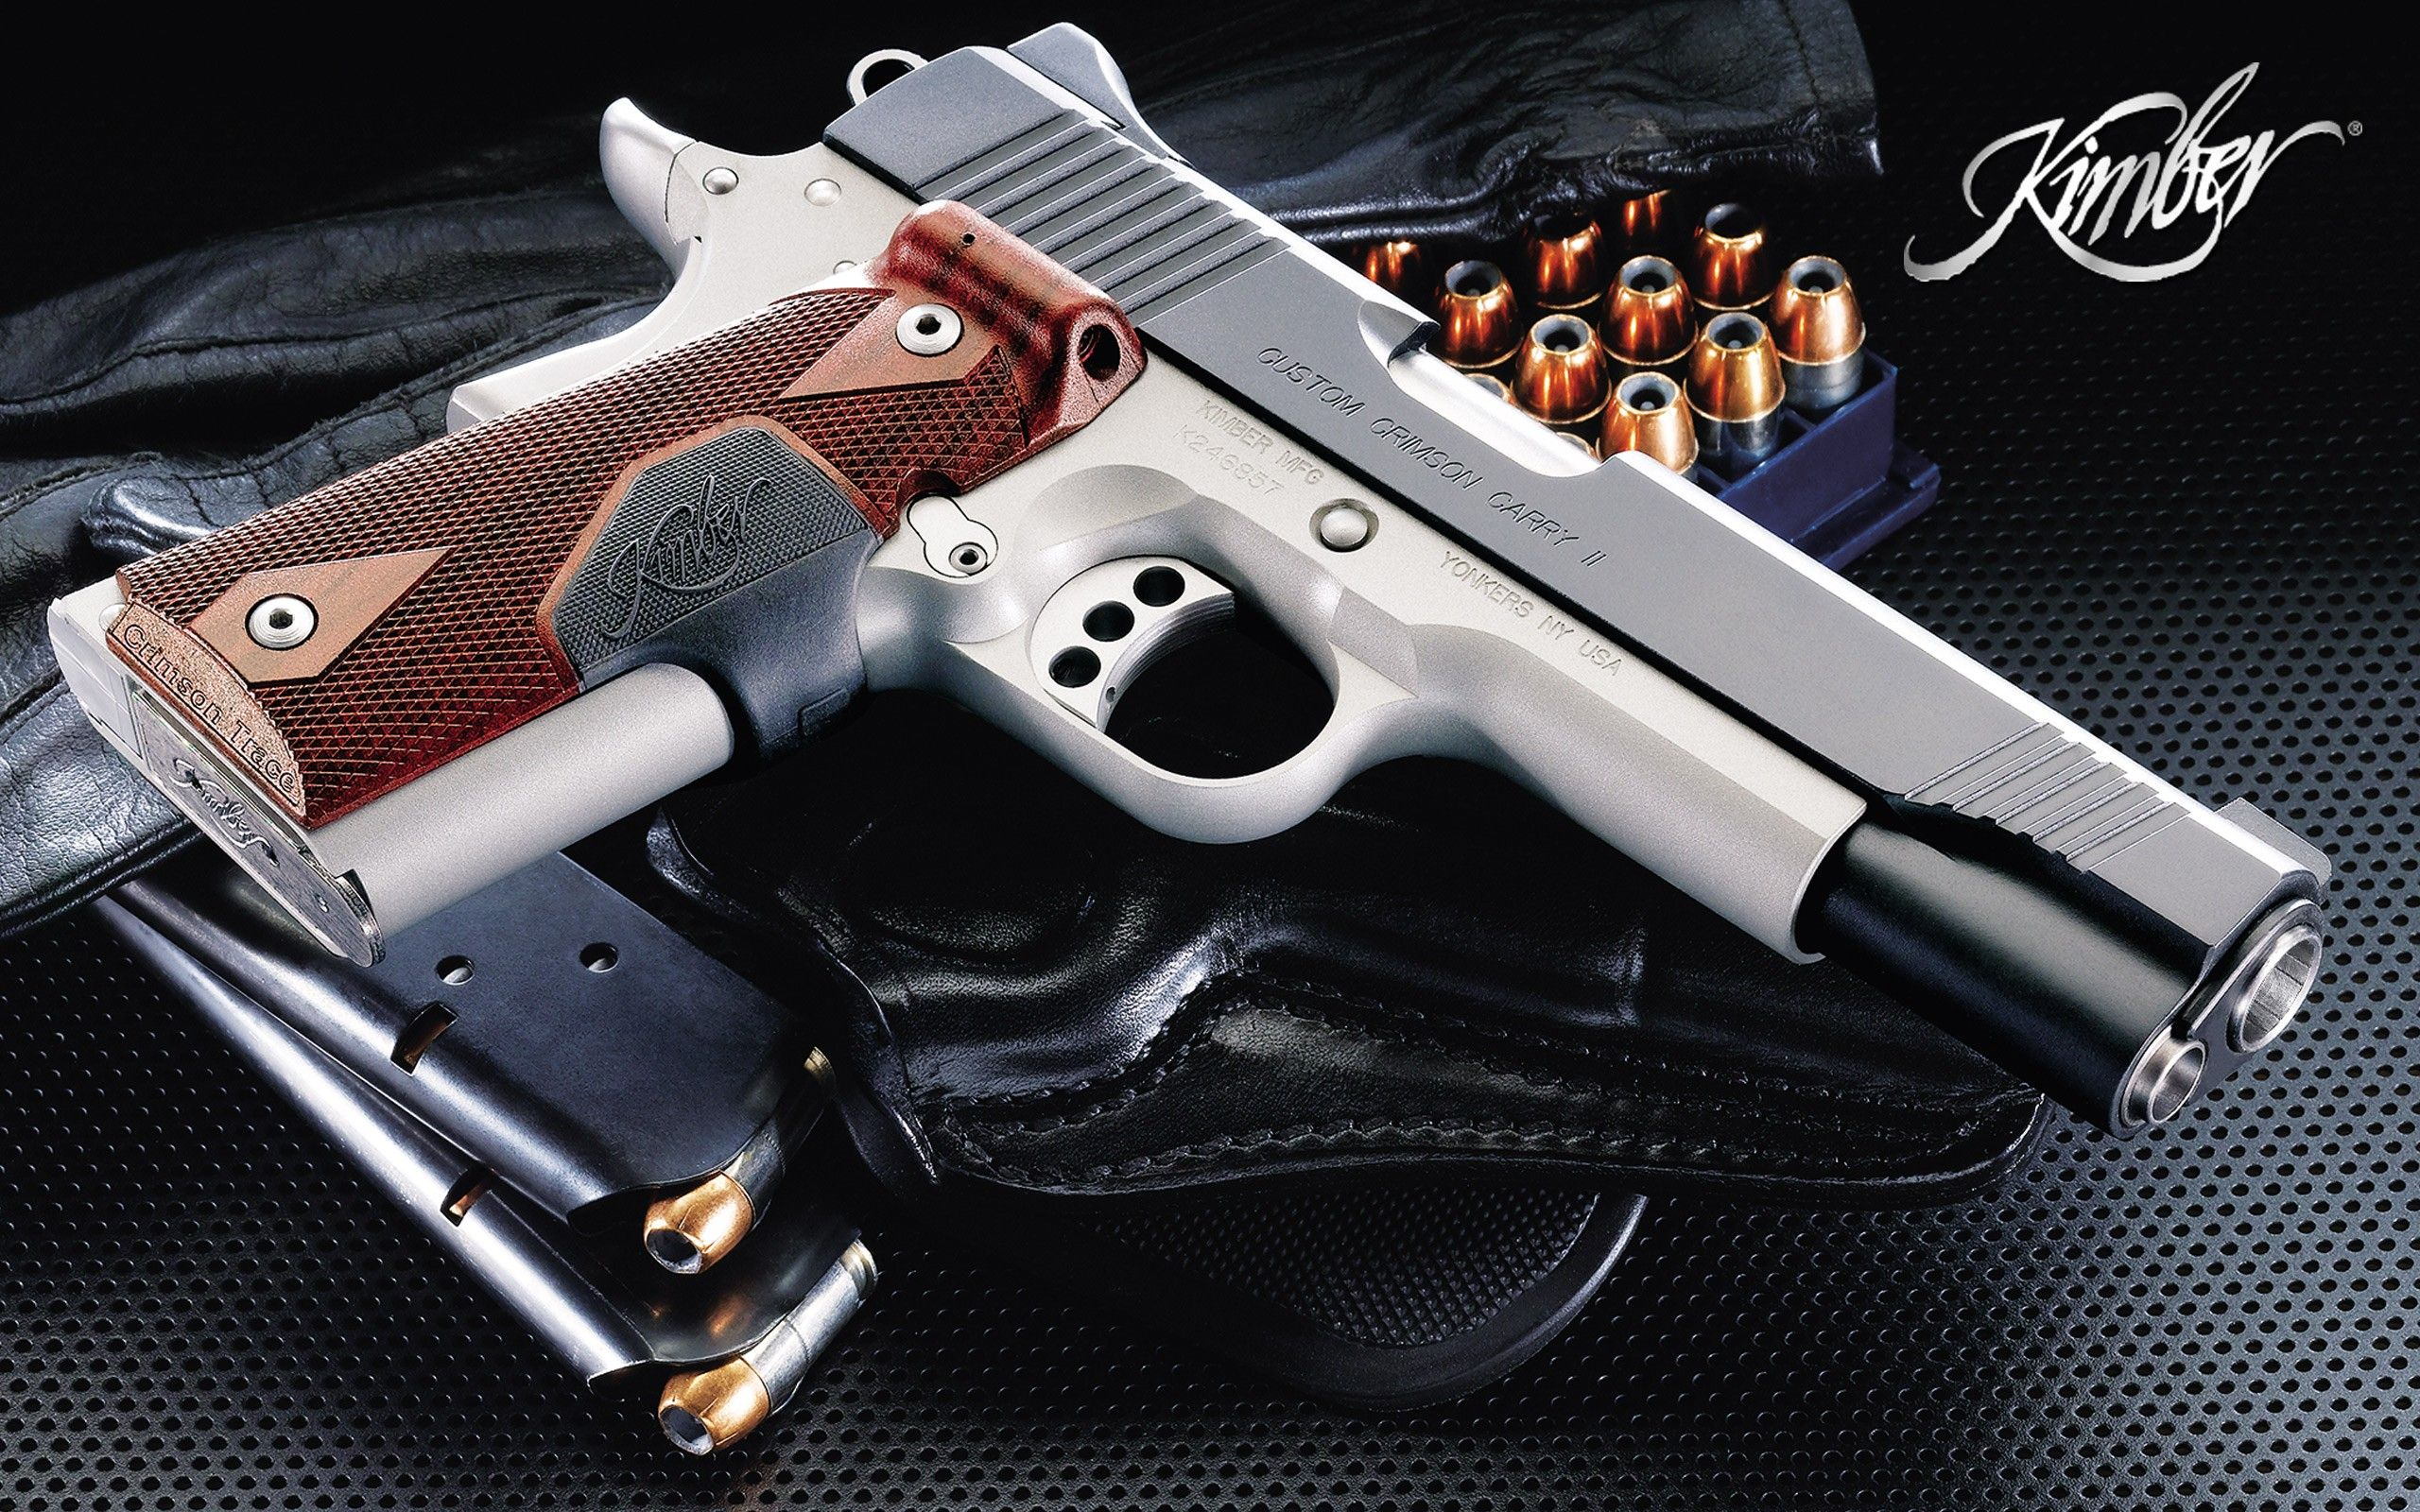 pistols guns weapons M1911 Equipment kimber ARMY FORCE 2560x1600 2560x1600